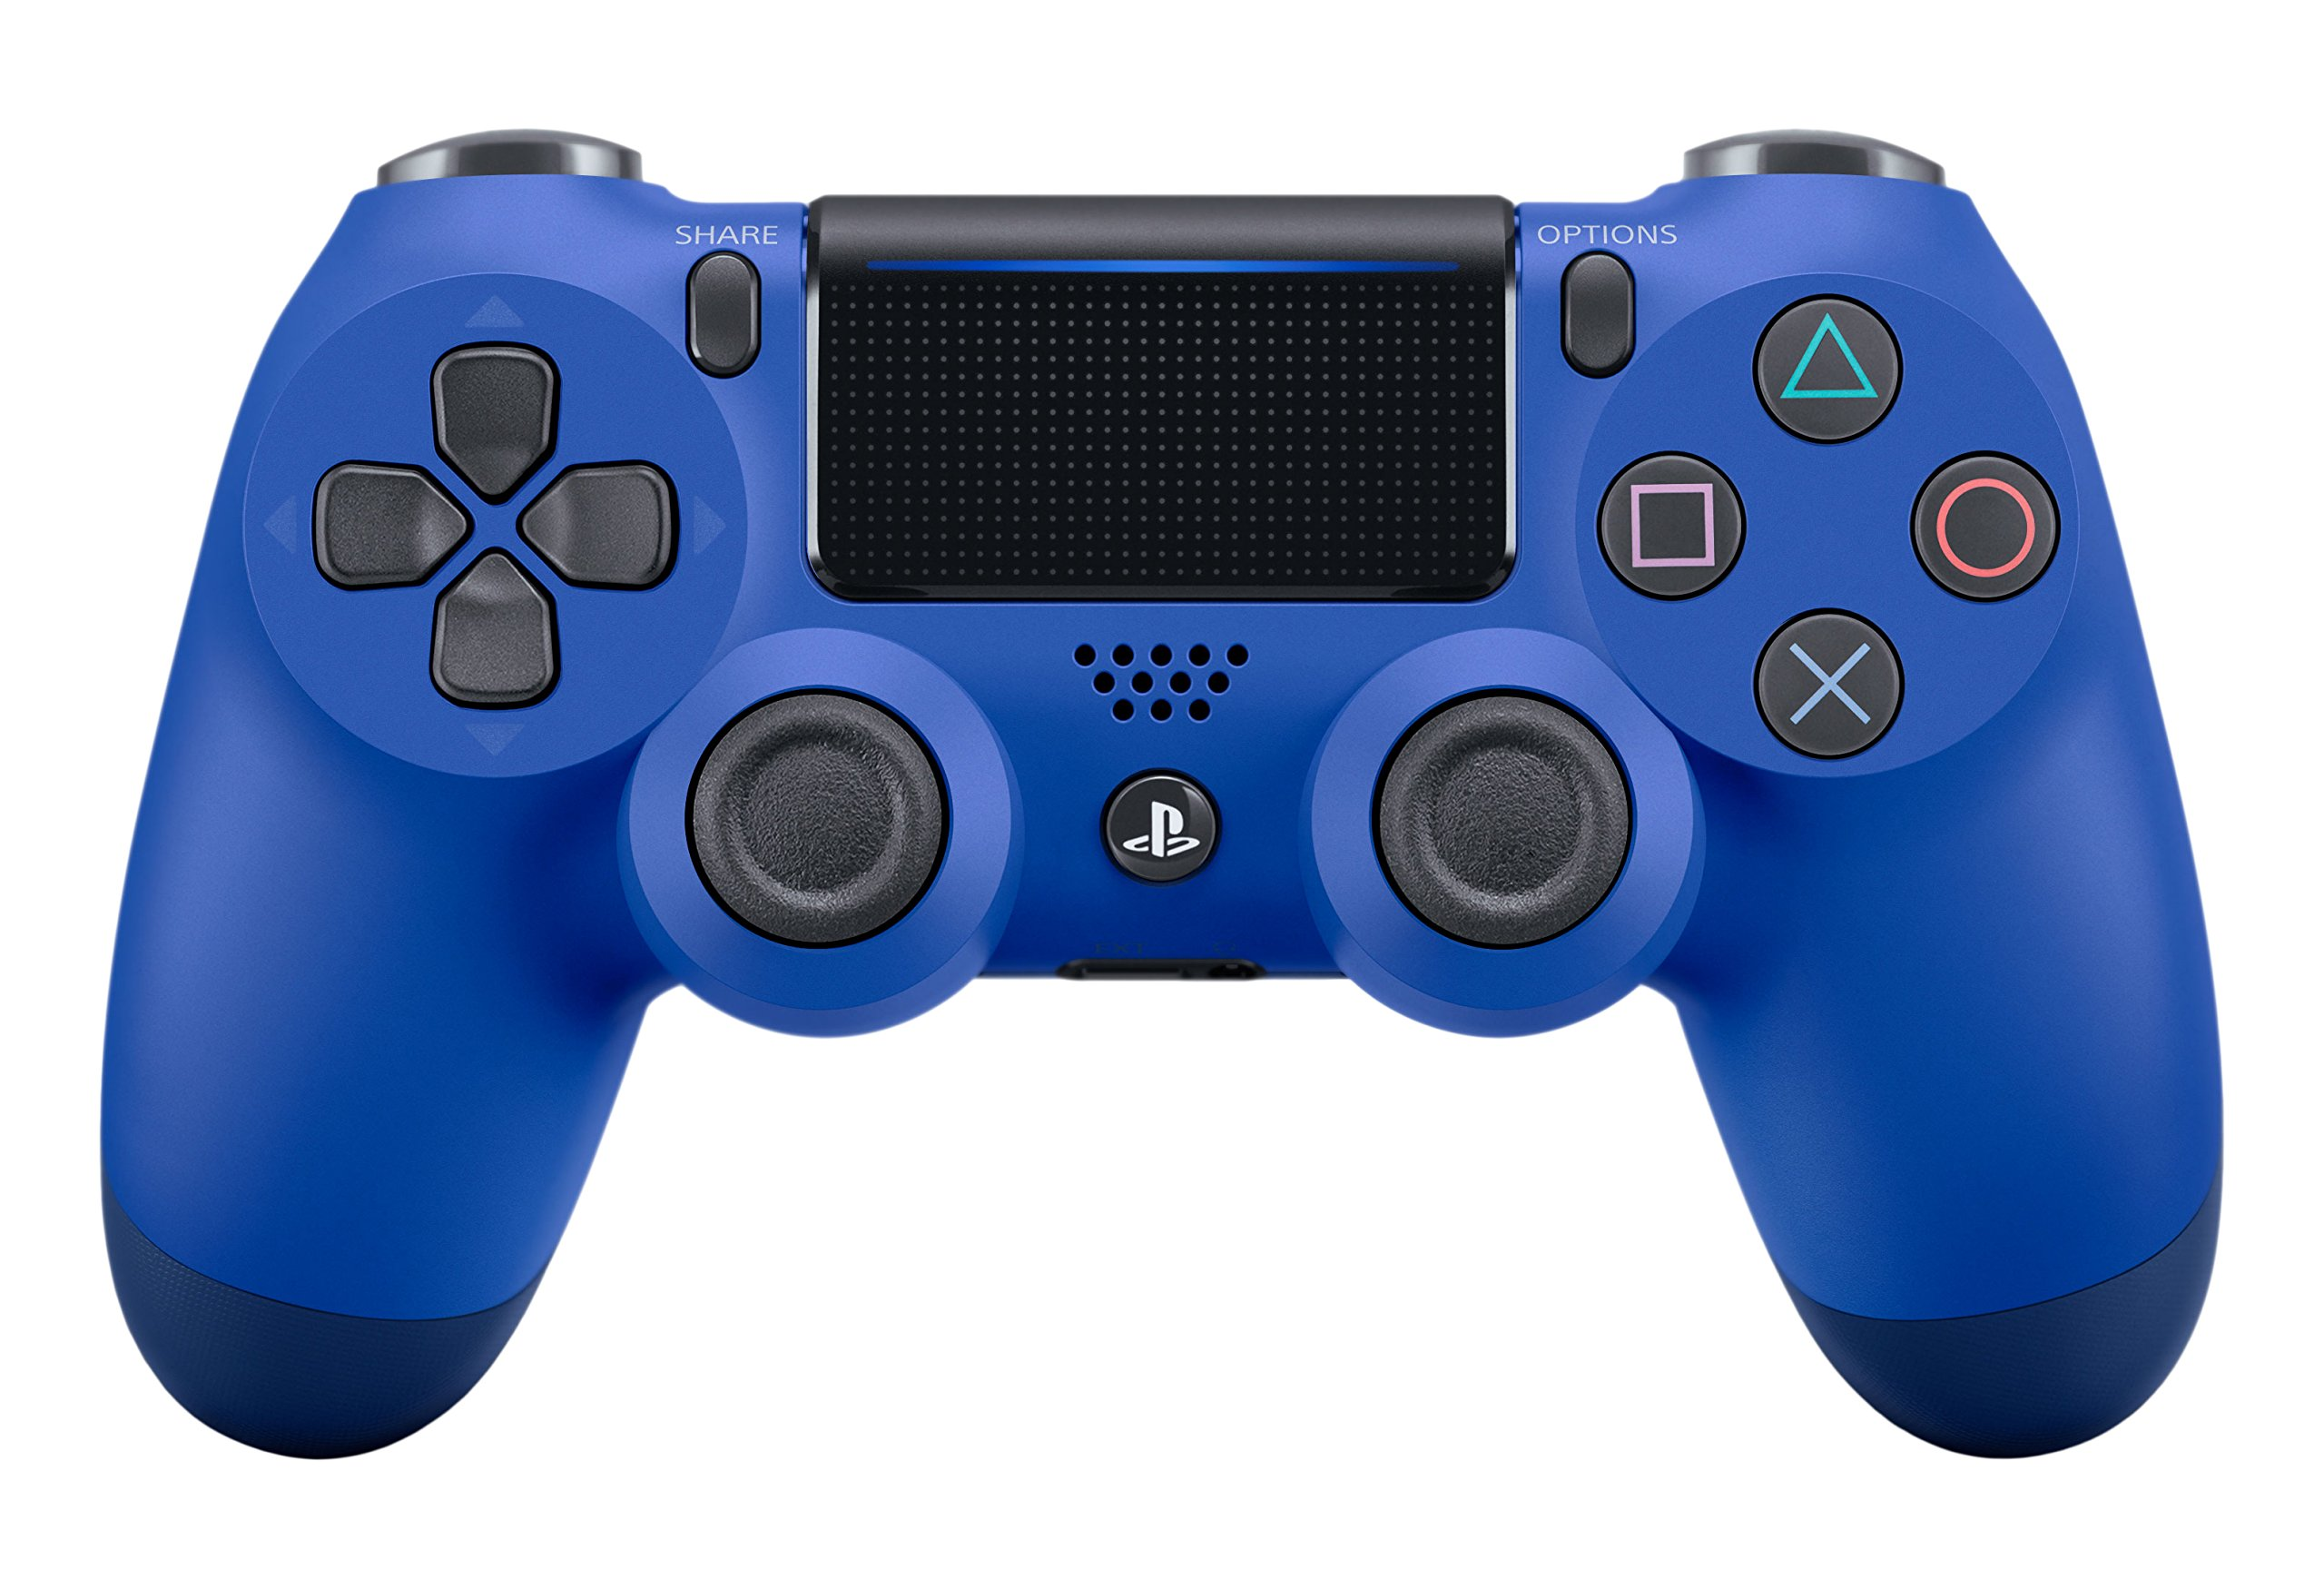 DualShock 4 Wireless Controller for PlayStation 4 - Wave Blue [Discontinued]